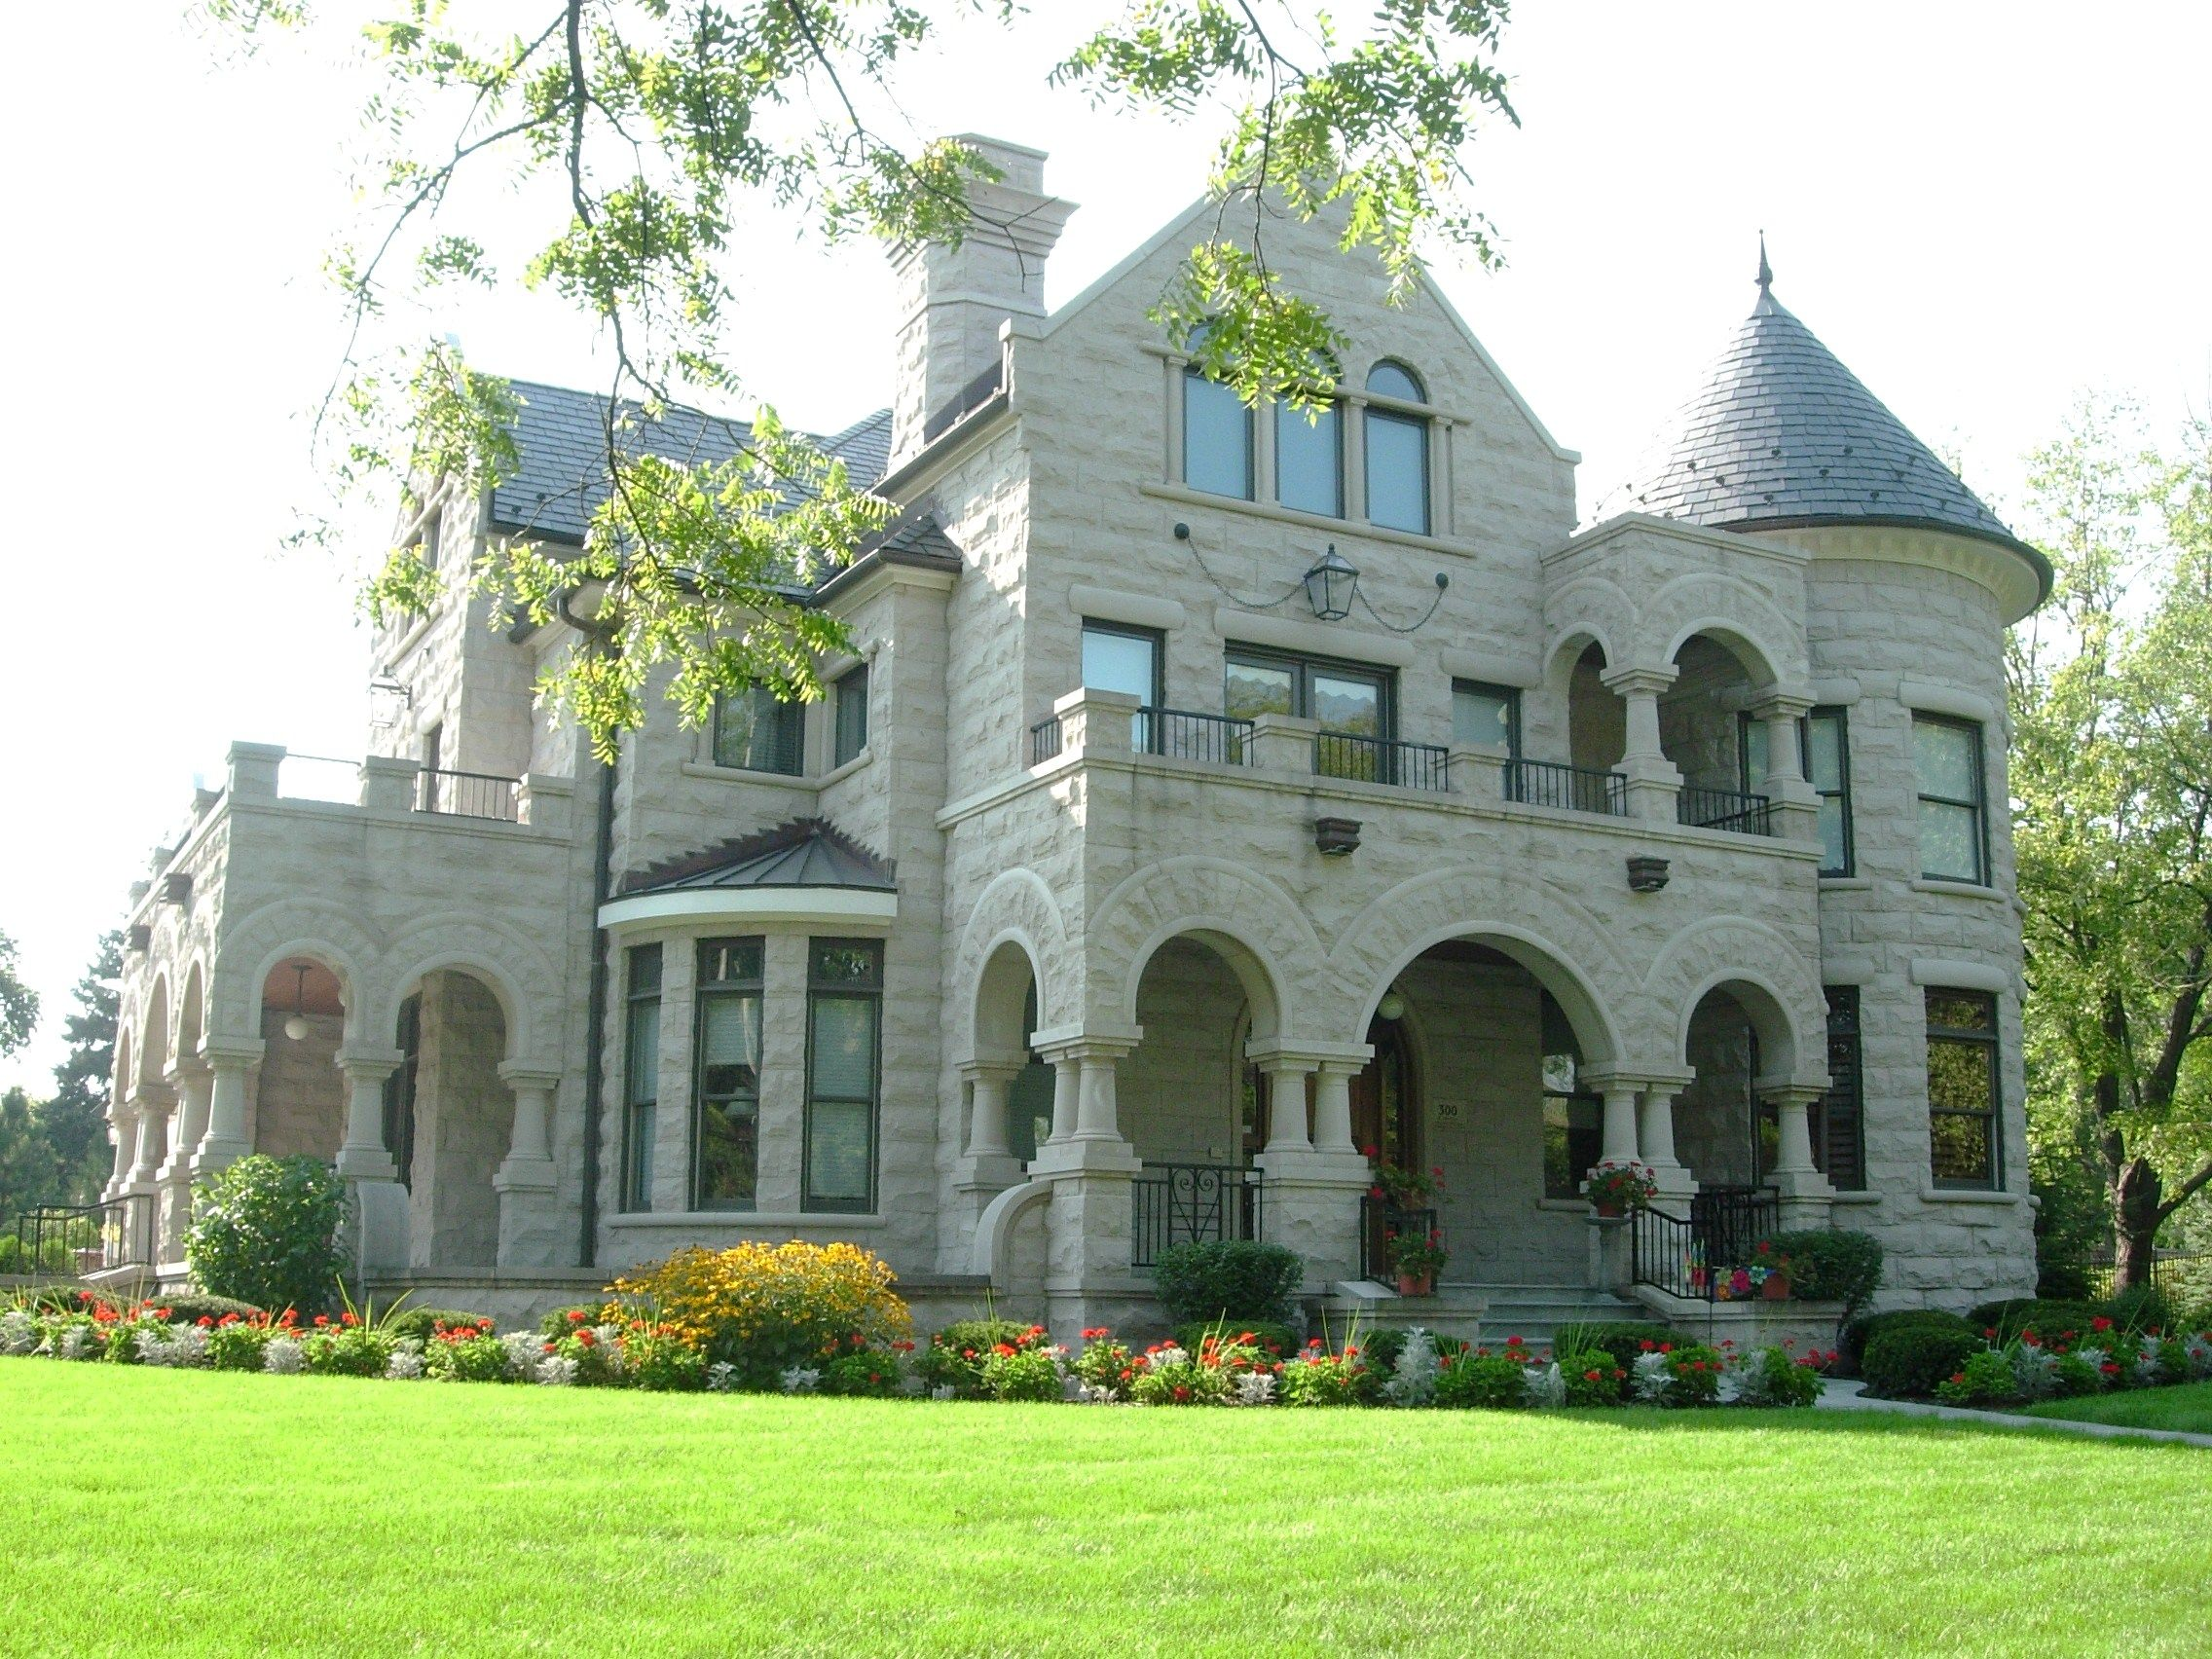 richardson romanesque style lent itself to homes for the very rich or public buildings such - Mansion Architectural Styles